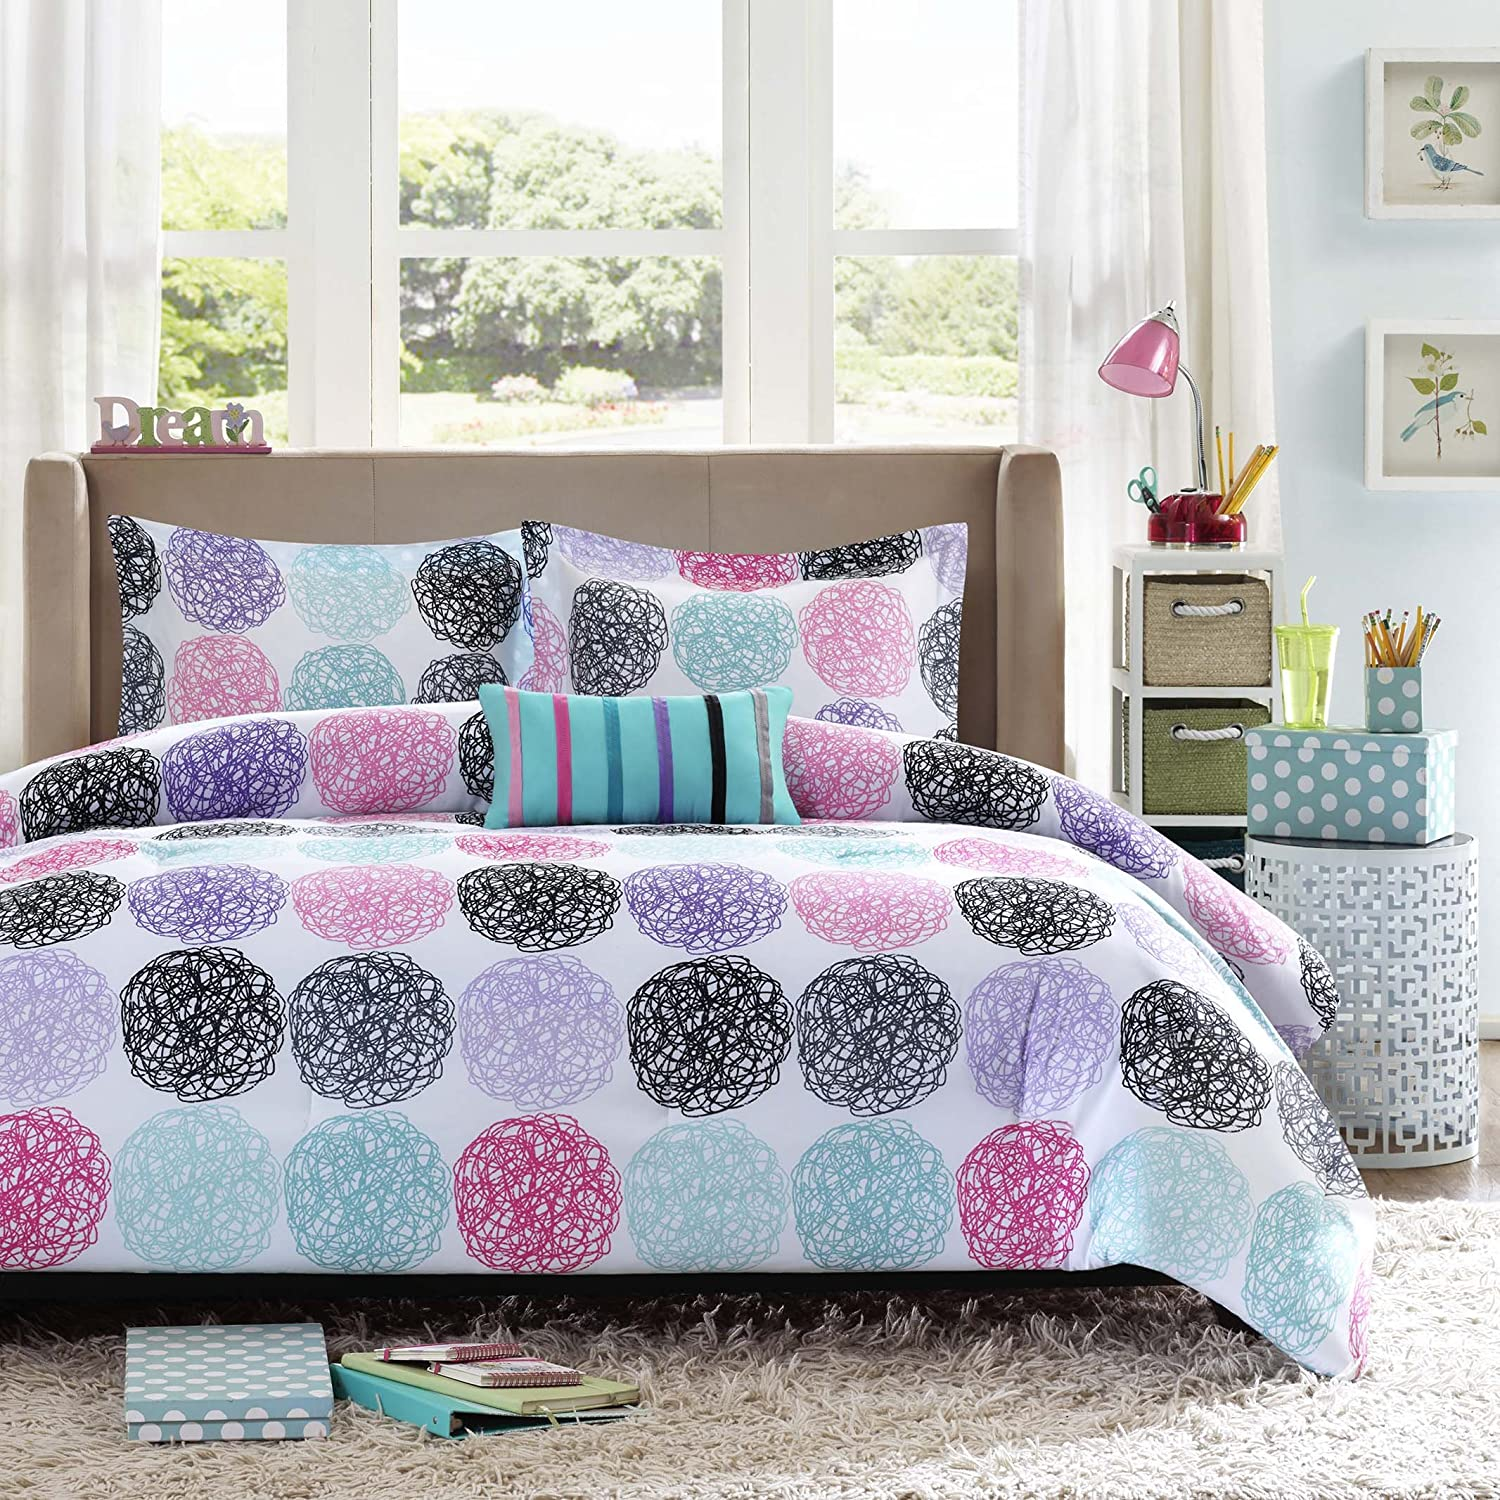 Amazon.com: Mi Zone   Carly Comforter Set   Purple   Twin/ Twin XL    Doodled Circles, Polka Dots U0026 Twill Tapes   Includes 1 Comforter, 1  Decorative Pillow, ...